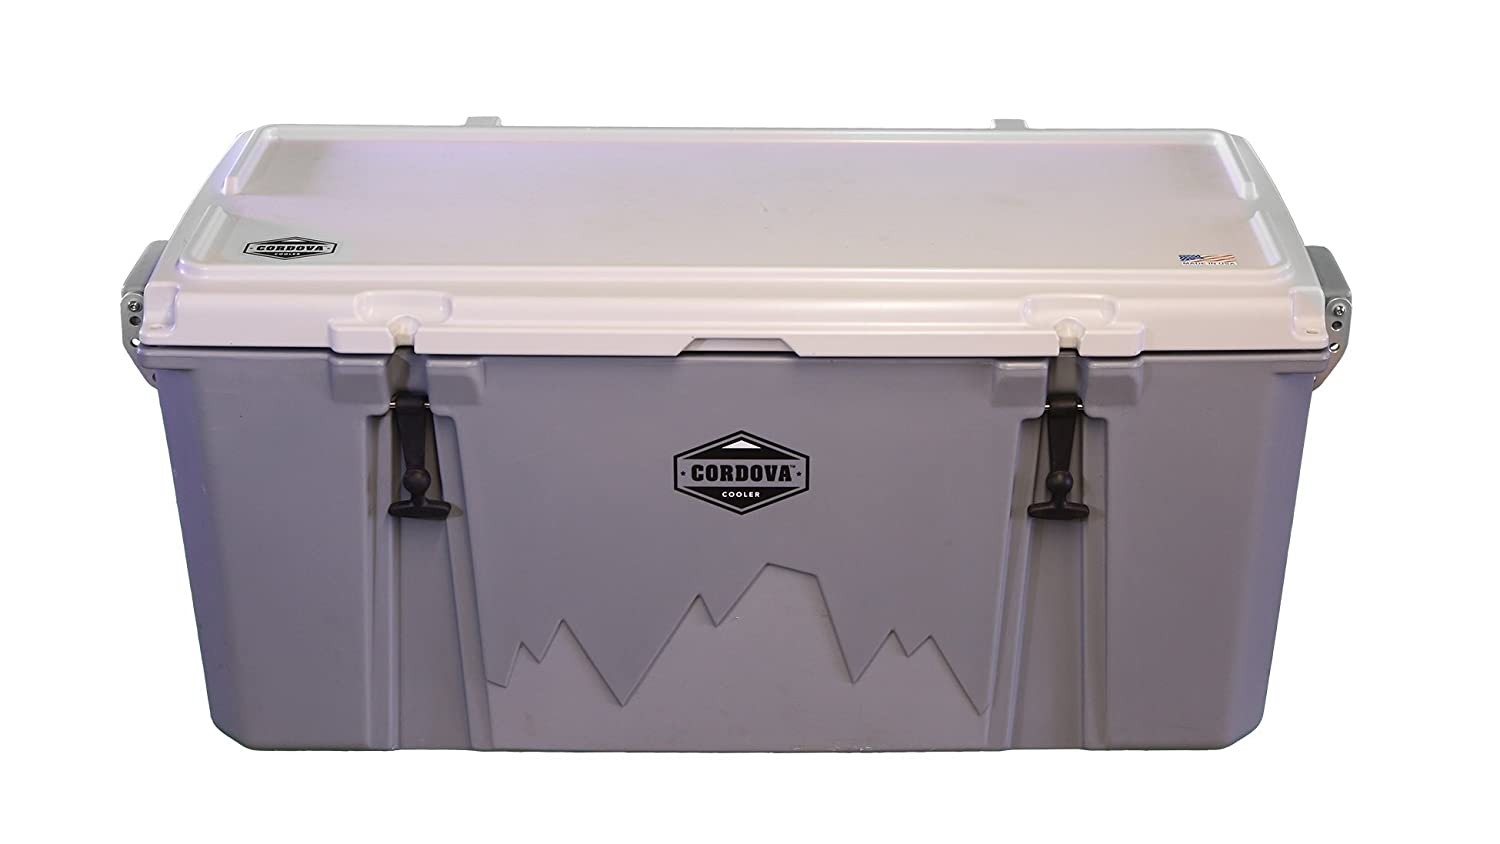 Game coolers for sale - Amazon Com Cordova Coolers Rotomolded Gray White Cooler With Extreme Ice Retention Up To Ten Days Sports Outdoors